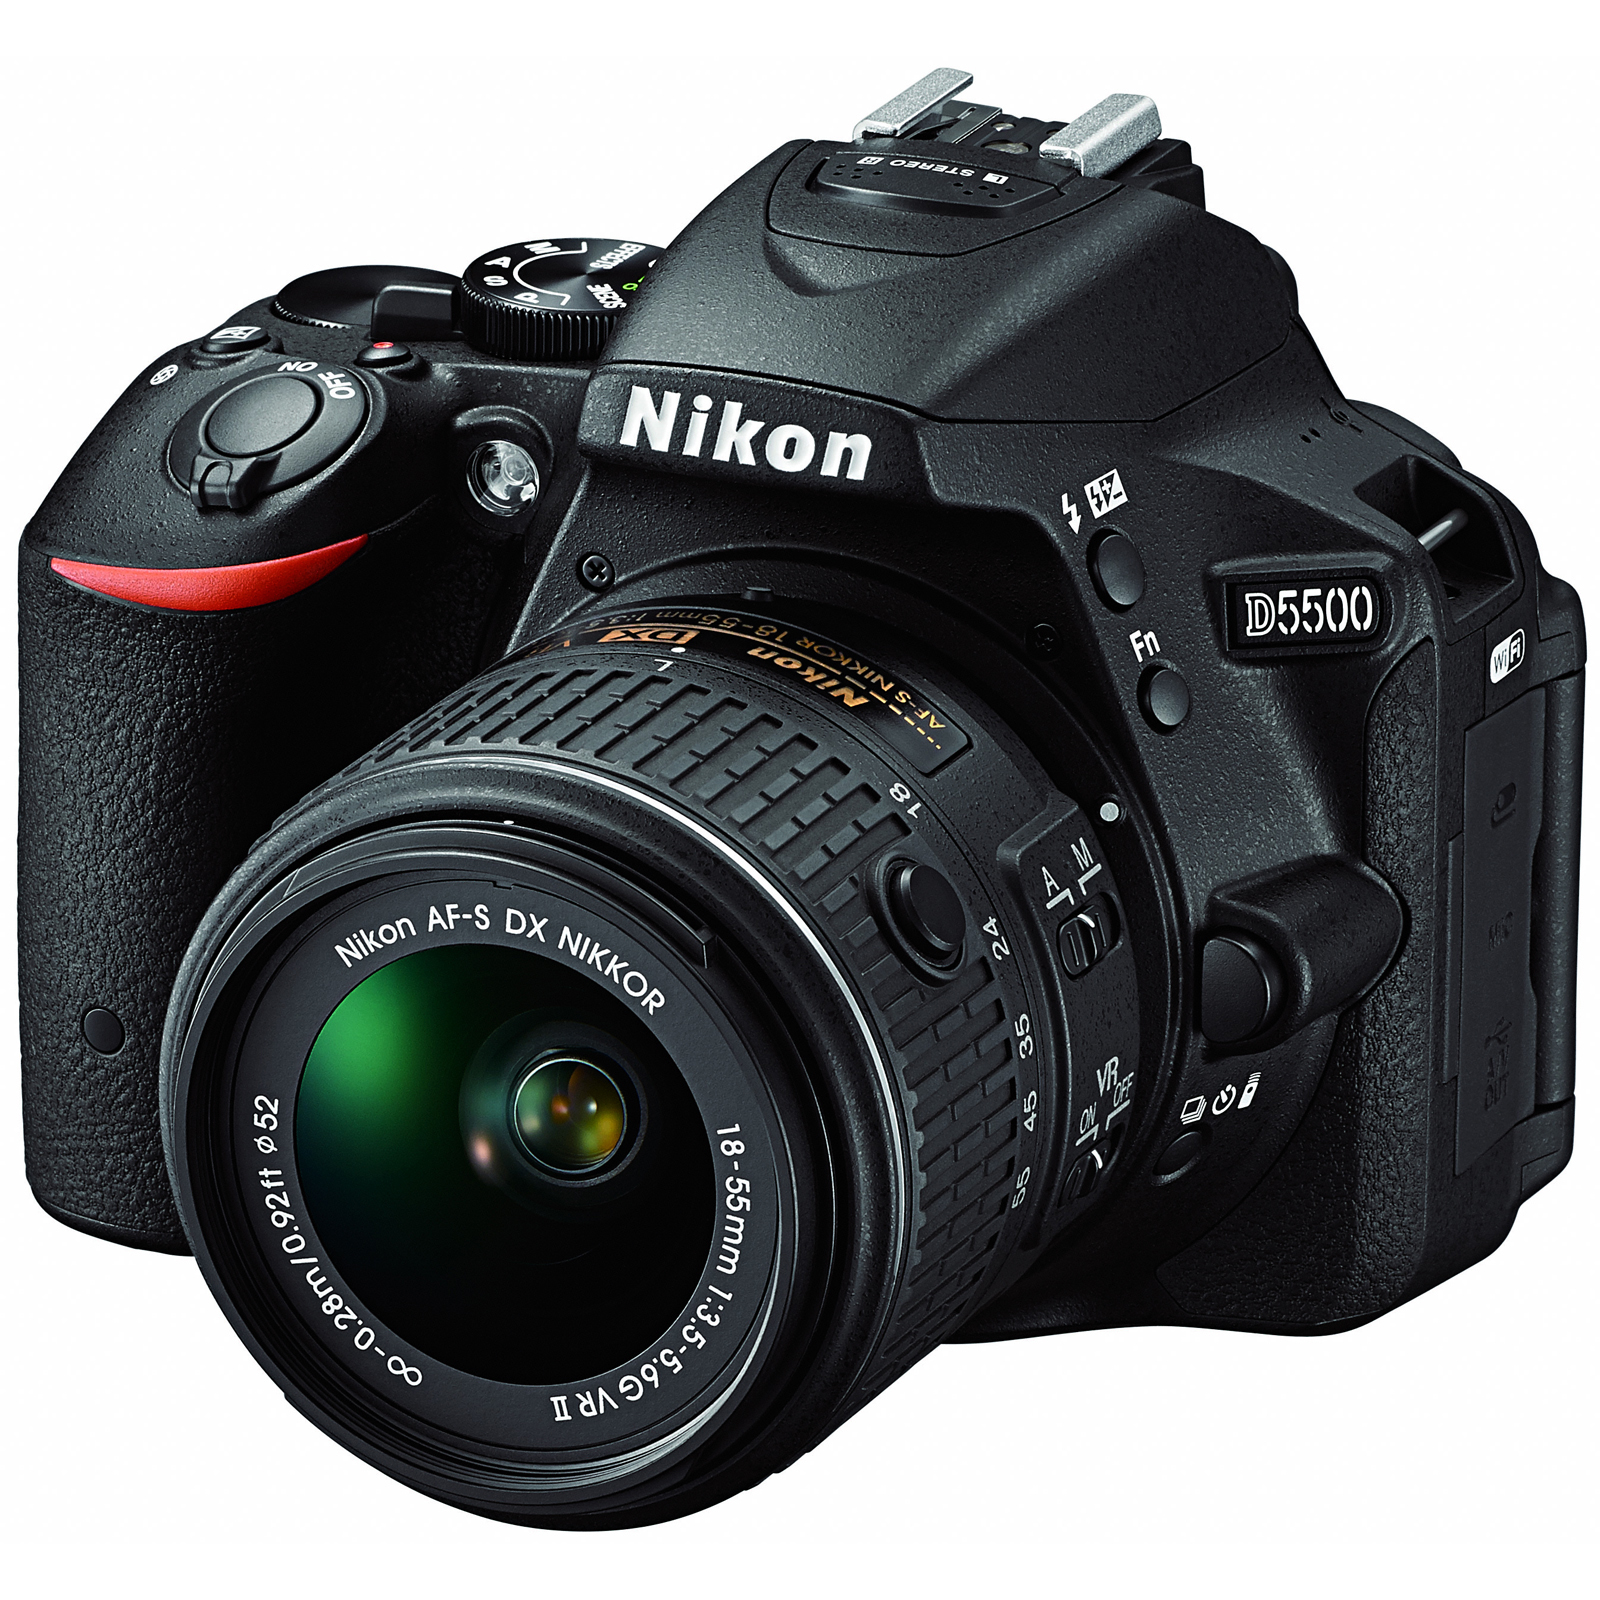 Nikon D5500 Wi-Fi Digital SLR Camera & 18-55mm VR DX II Lens (Black) - Factory Refurbished includes Full 1 Year Warranty